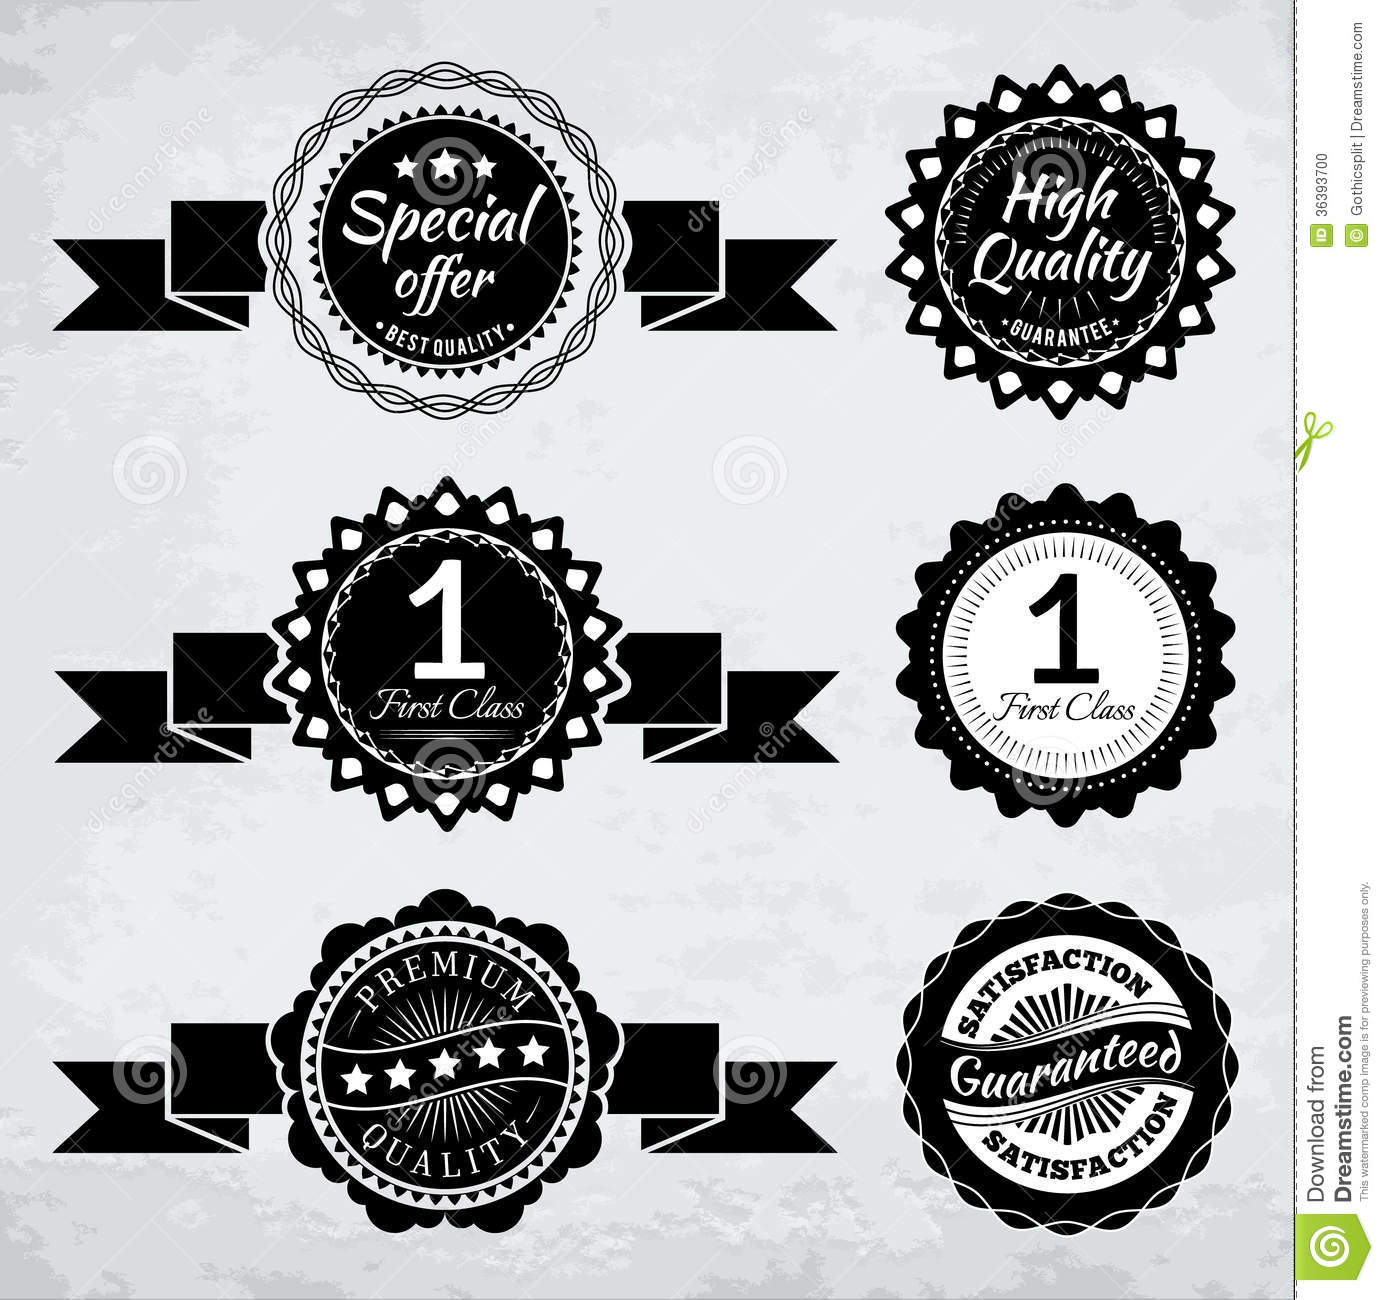 10 Black And White Oval Design Retro Badge Vectors Images